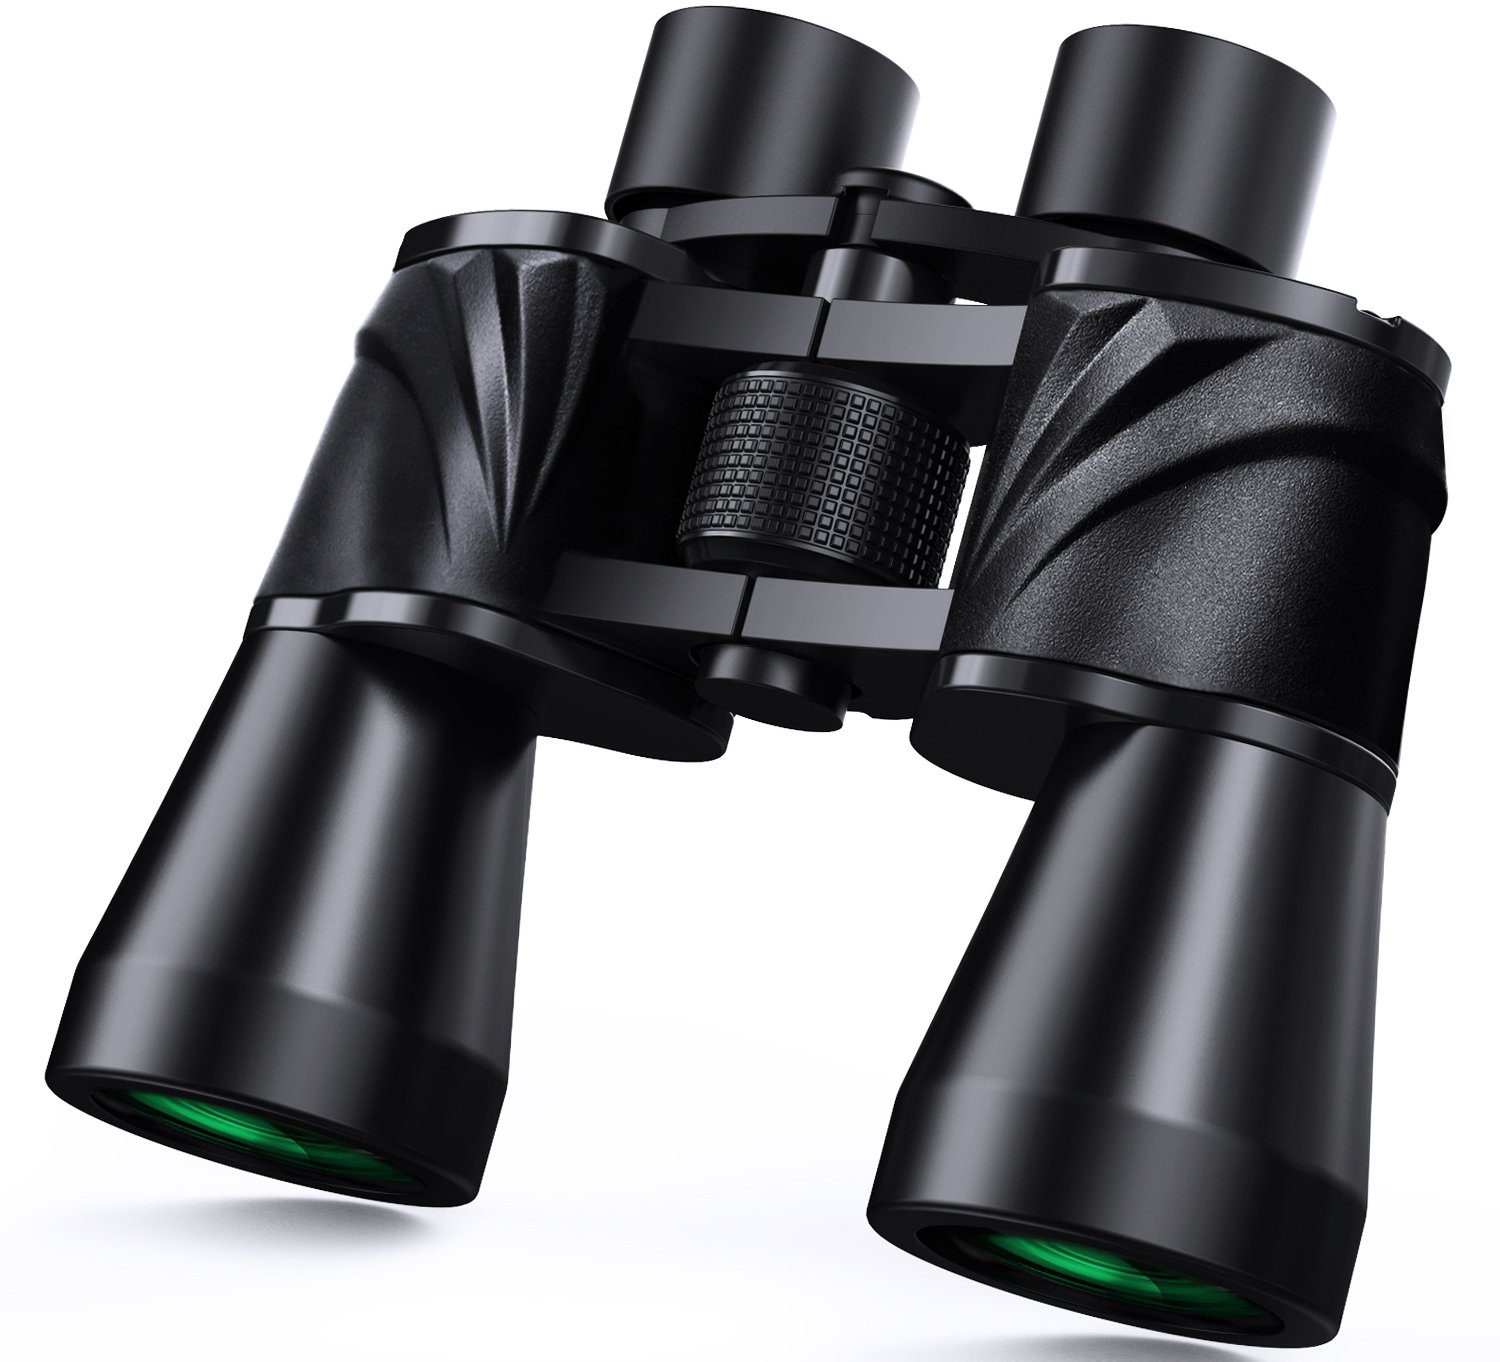 10x50 Powerfull Binoculars for Adults with Low Light Night Vision, Large Eyepiece, 10 Seconds Quick Focus, Waterproof Wide Angle Compact-Binoculars-for-Adults-Bird-Watching, Hunting, Concerts by Pankoo